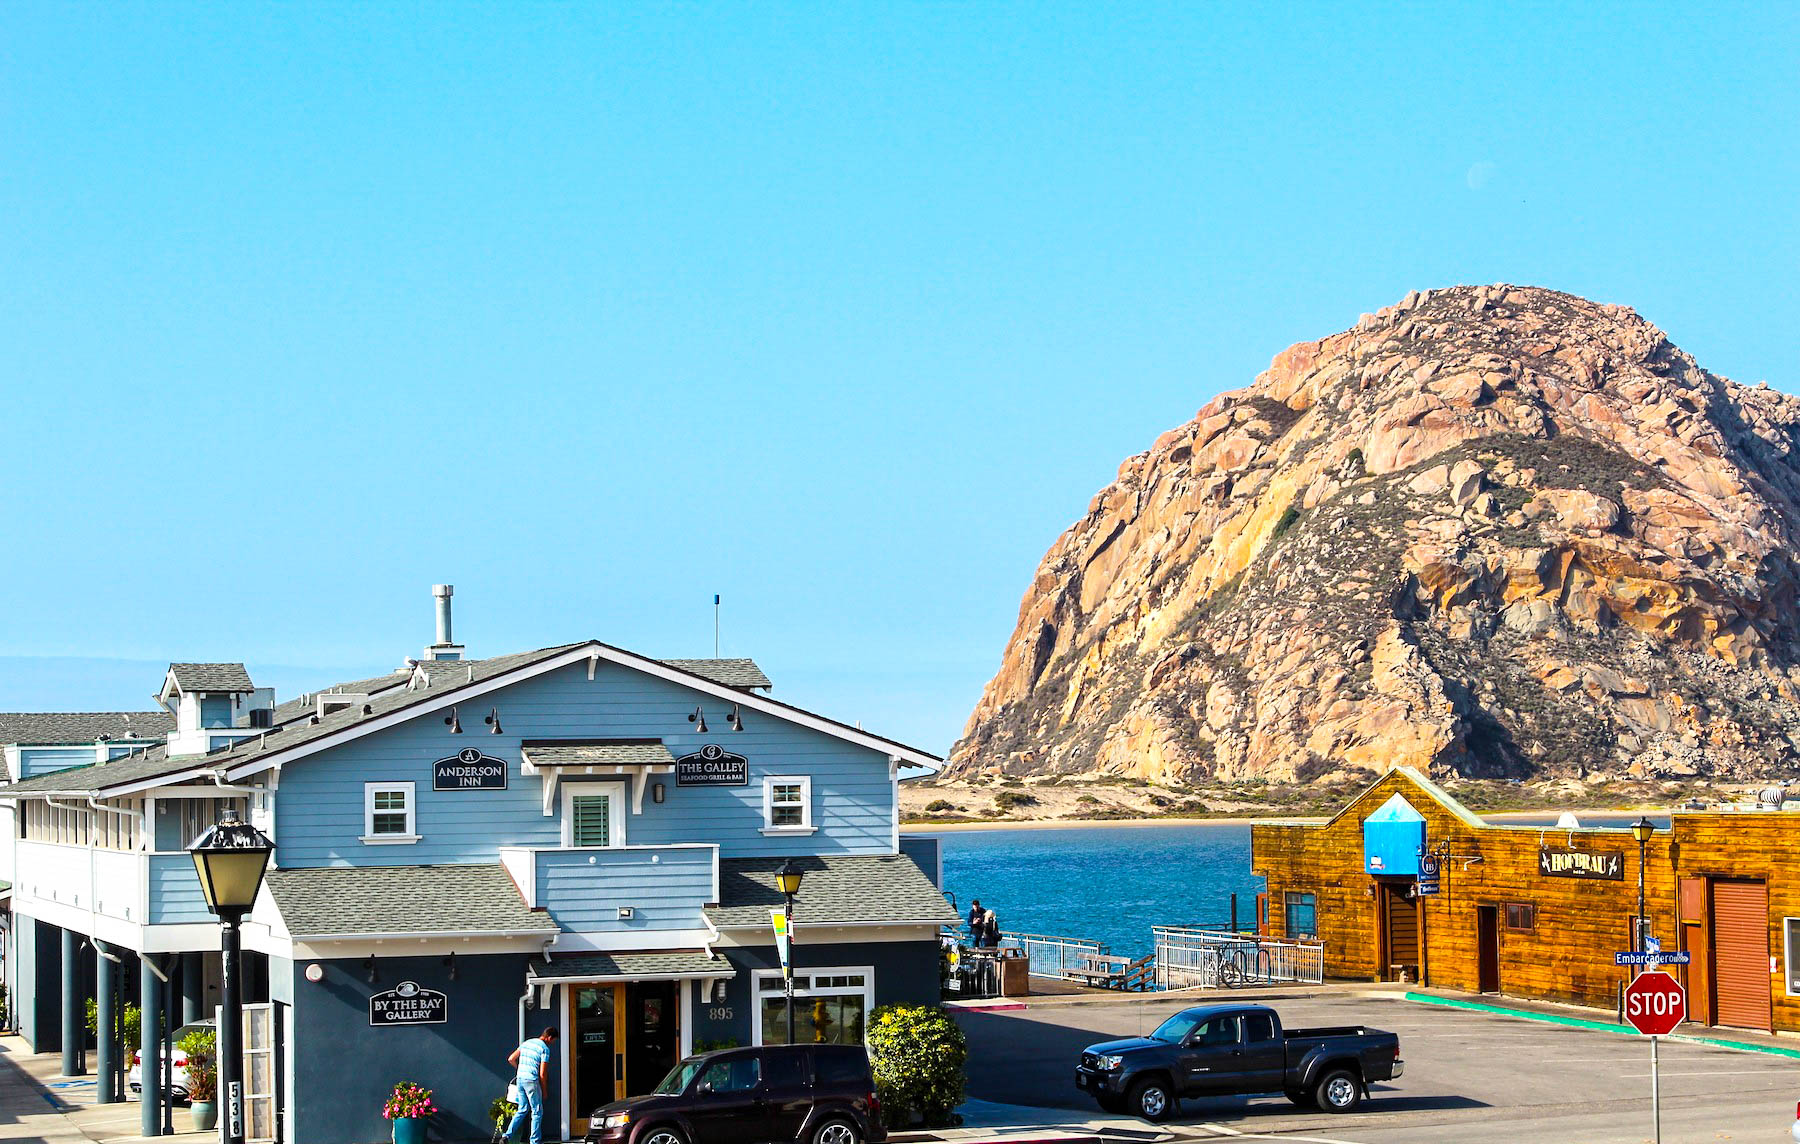 Morro-Bay-and-Anderson-Inn-2.jpg